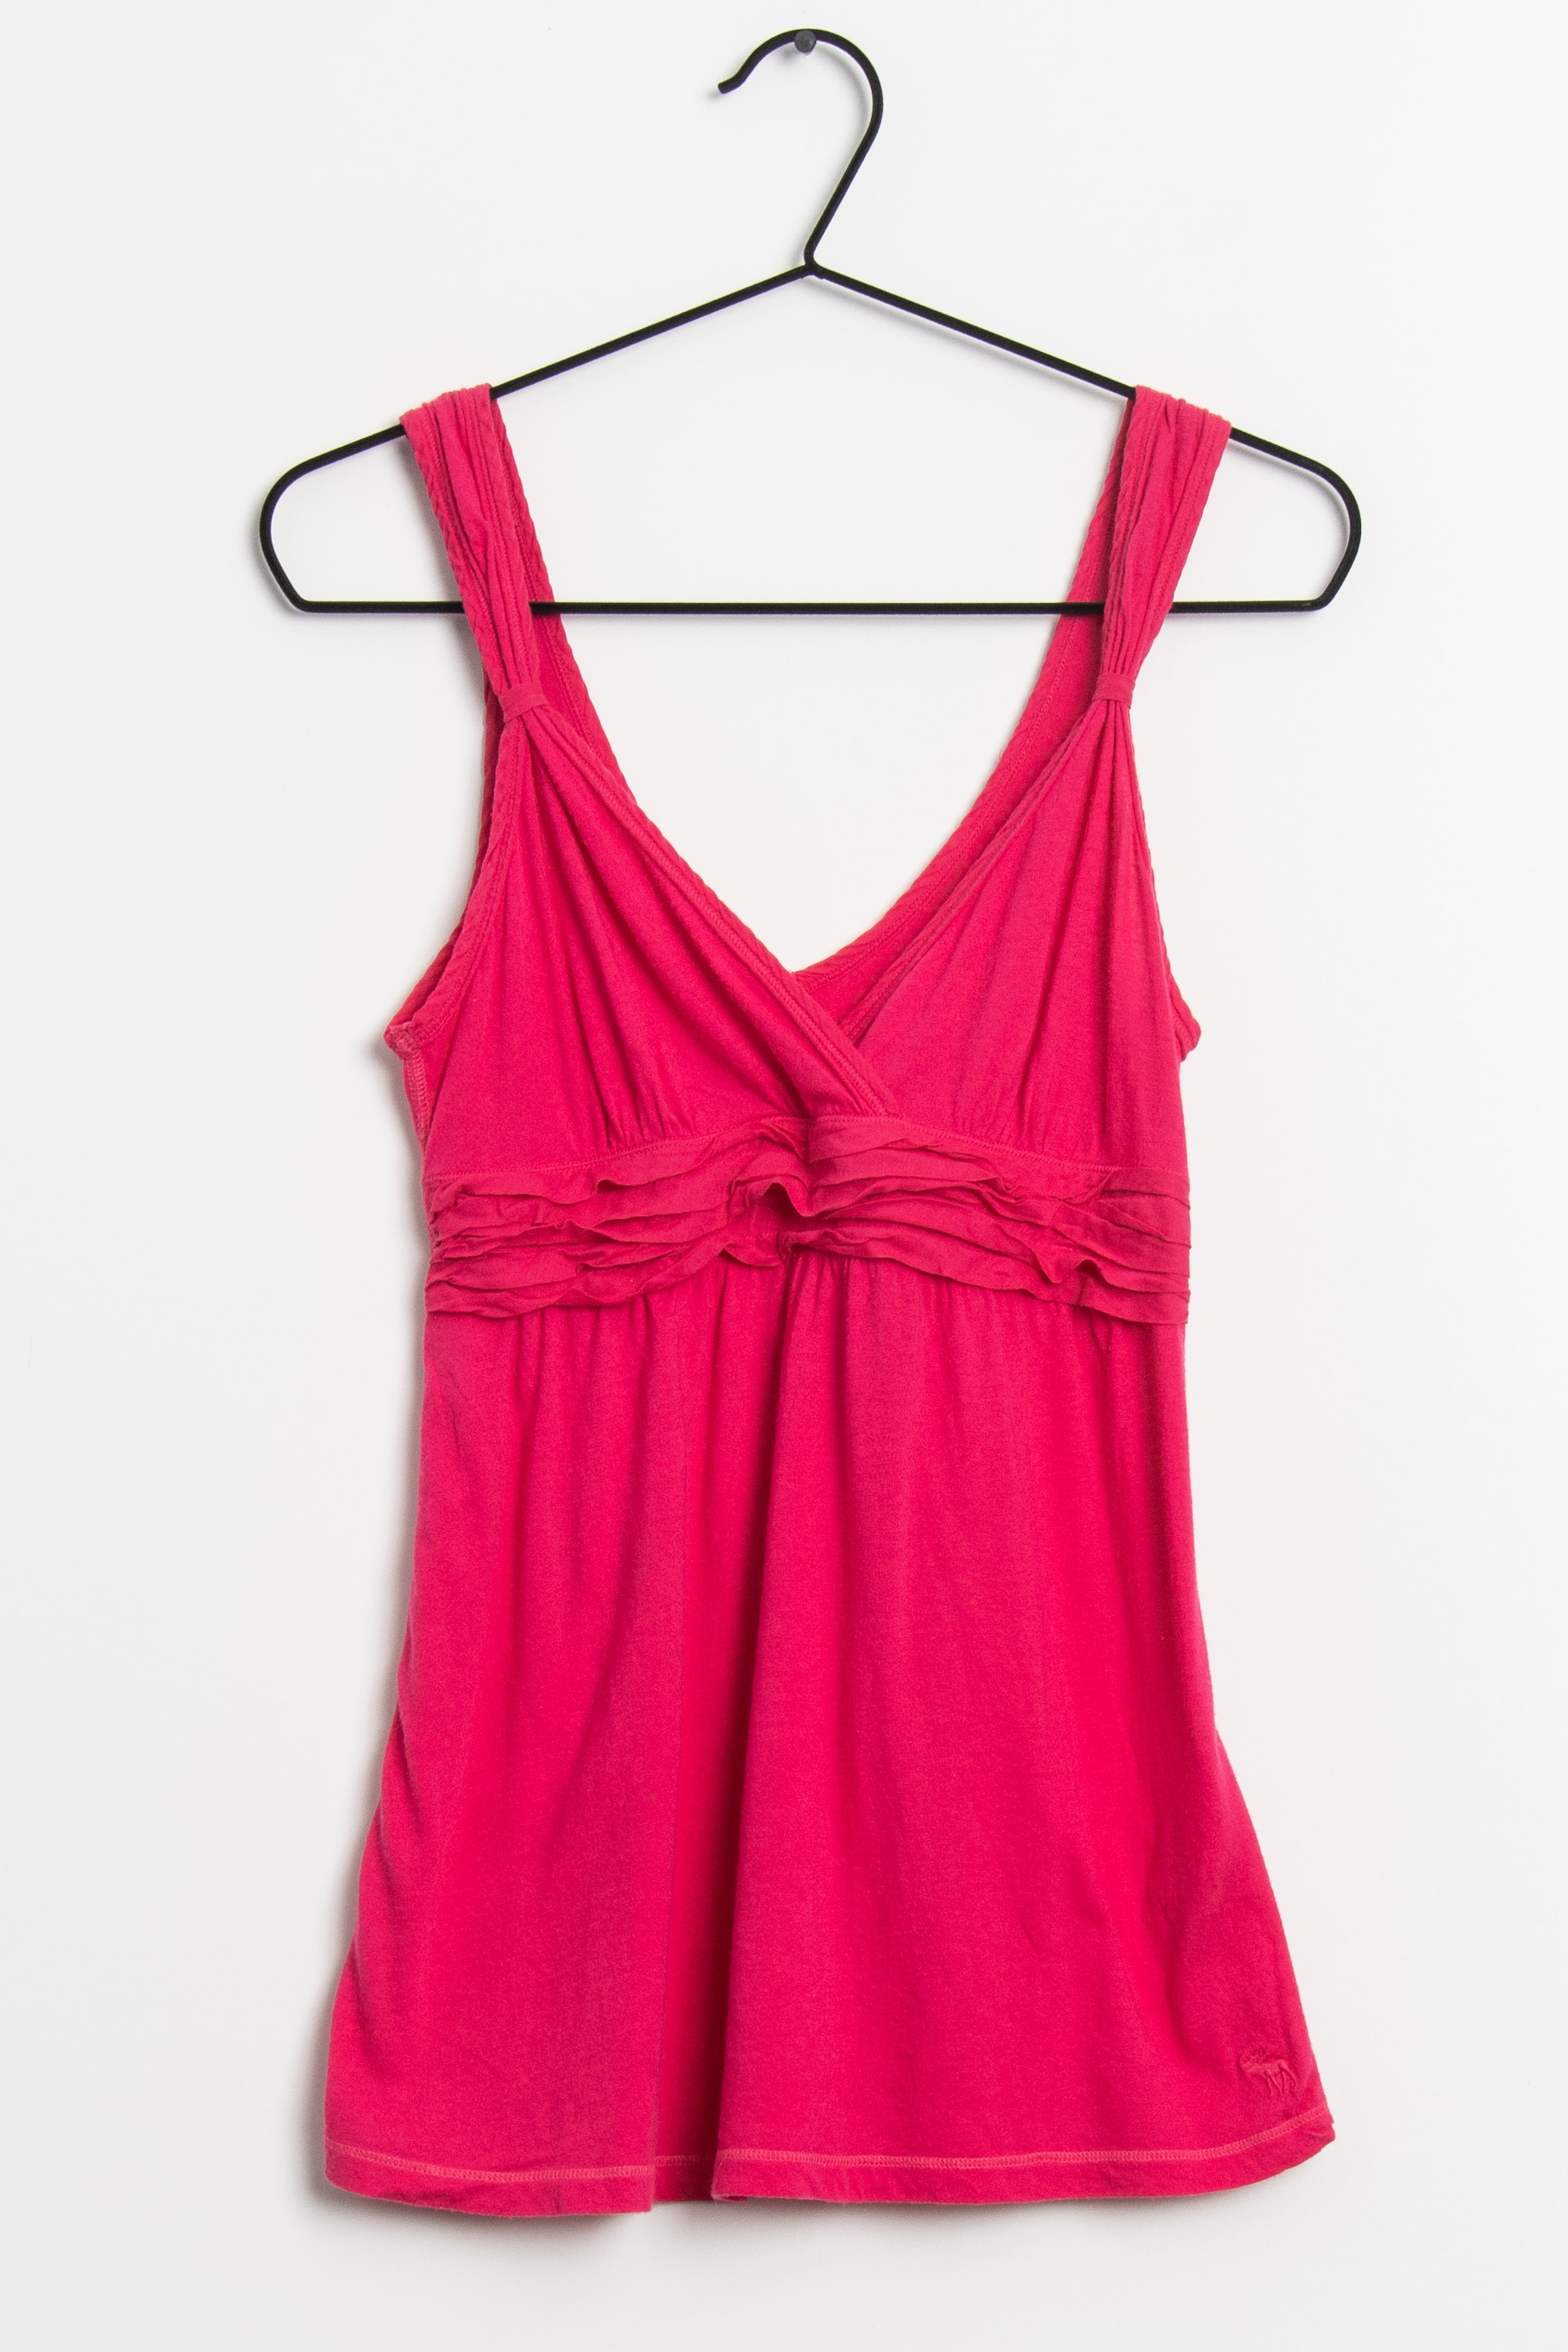 Abercrombie & Fitch Top Pink Gr.S